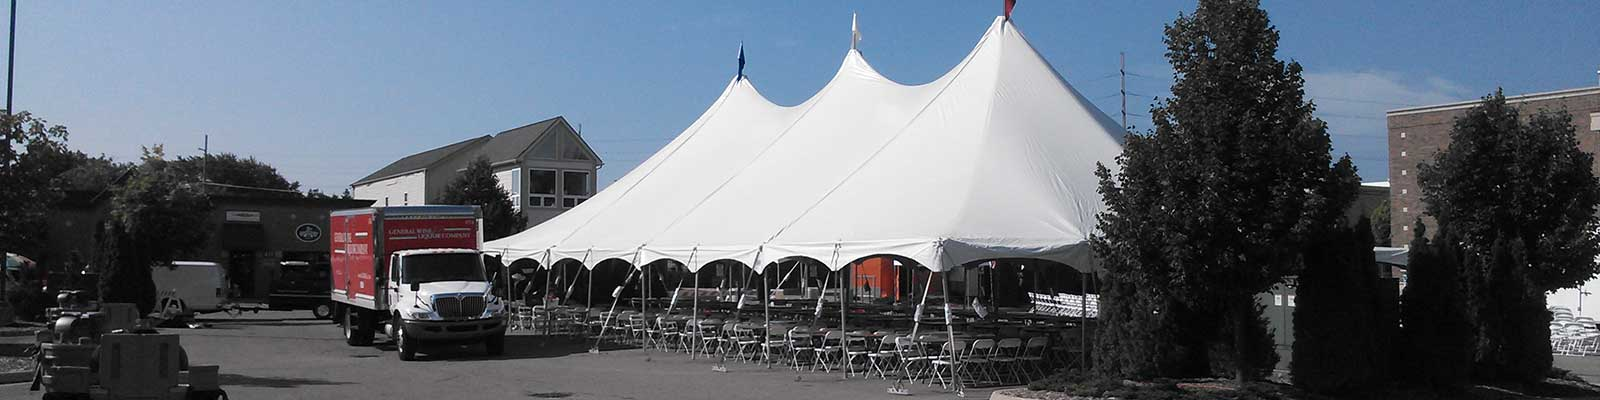 Tent rentals in Brighton Michigan South Lyon Howell Parshallville Novi Ann : michigan canopy tent - memphite.com